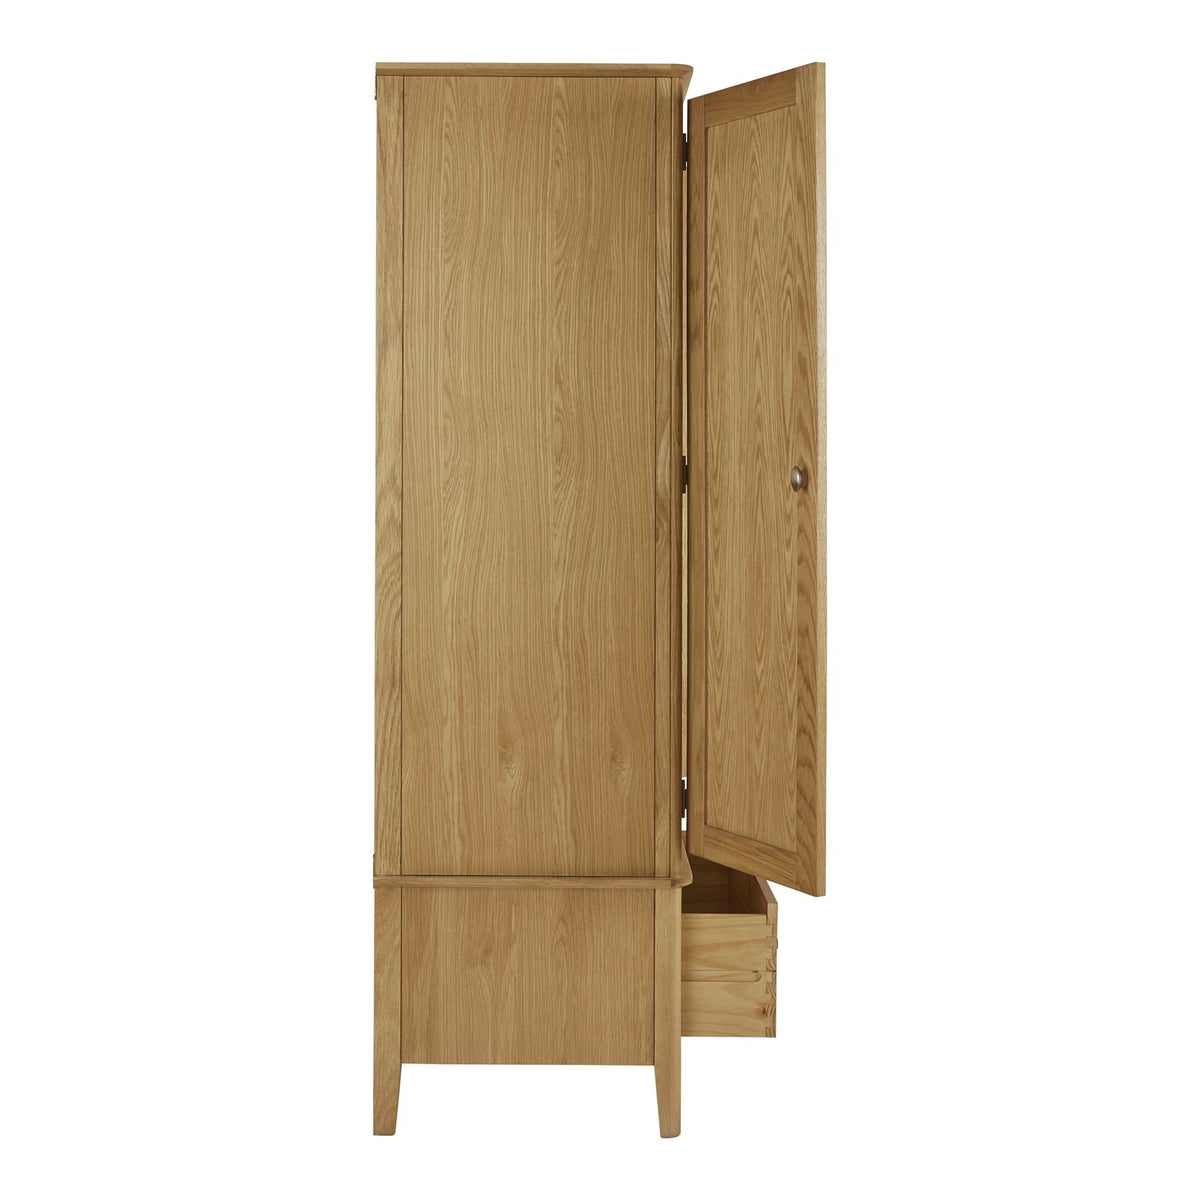 Alba Oak Double Wardrobe with Drawer side view